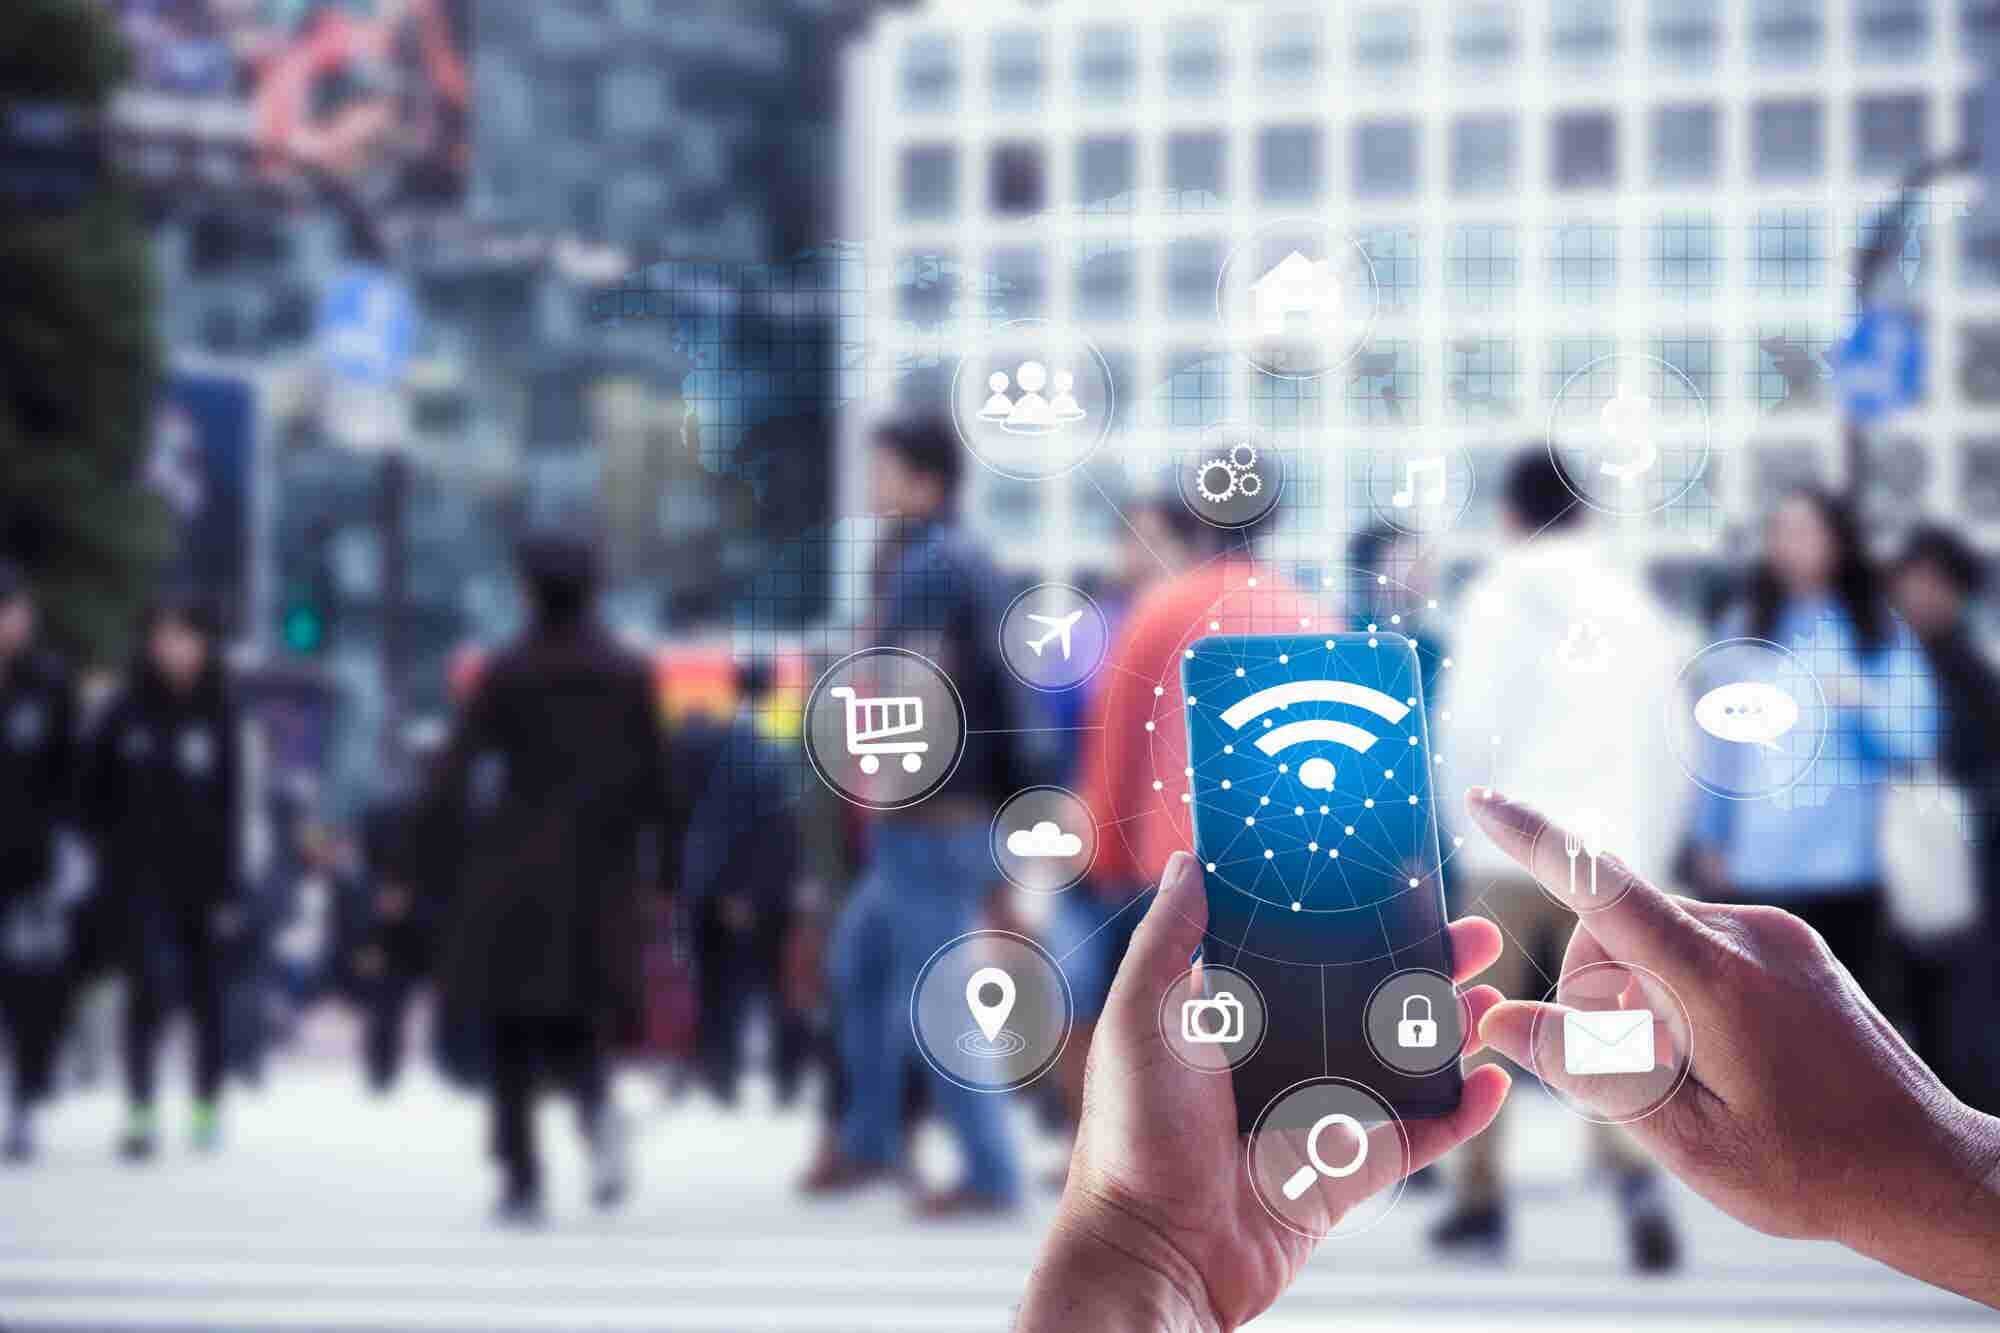 IoT Disruption Has Begun. And Retail Is Just the Start. When Will Your Industry Be Affected?